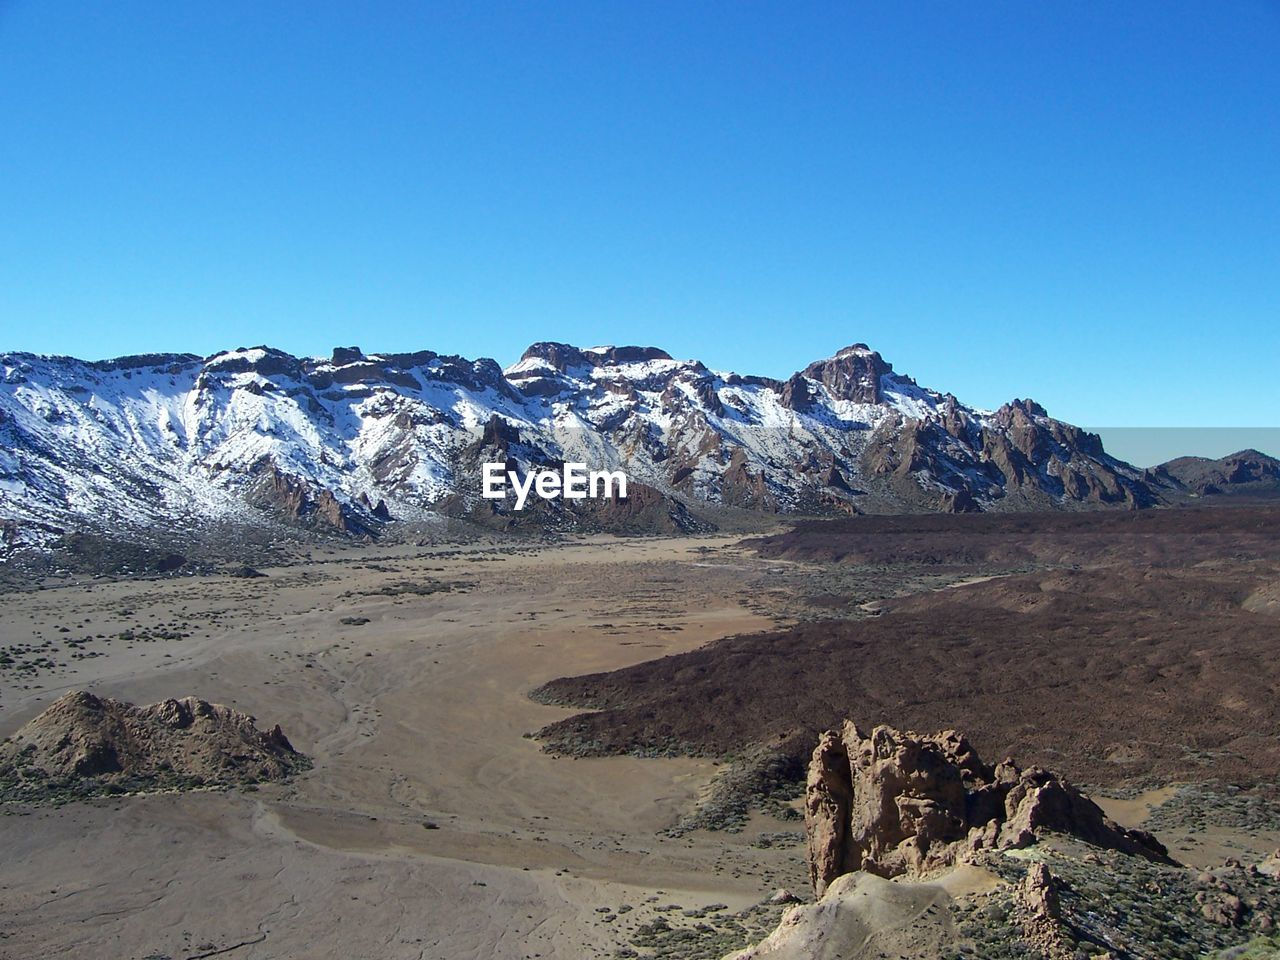 sky, clear sky, mountain, scenics - nature, blue, tranquil scene, beauty in nature, copy space, tranquility, nature, non-urban scene, landscape, day, environment, mountain range, remote, rock, idyllic, no people, geology, arid climate, outdoors, climate, formation, snowcapped mountain, mountain peak, eroded